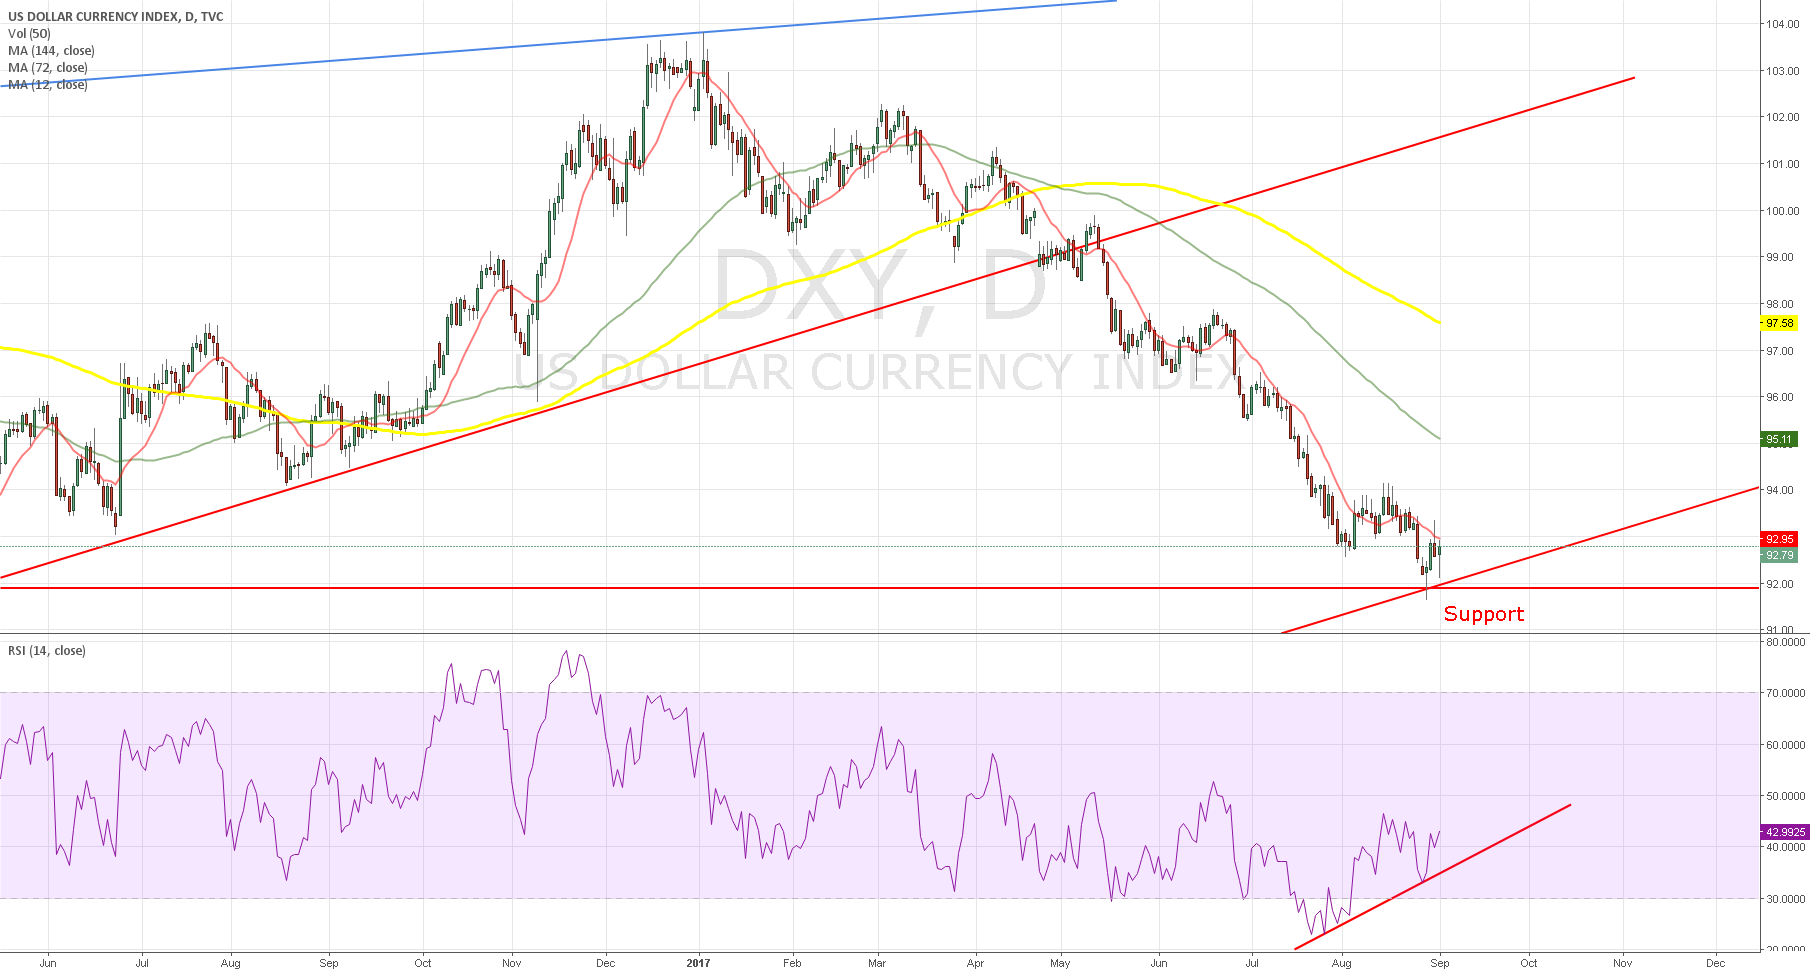 dxy 10 year chart